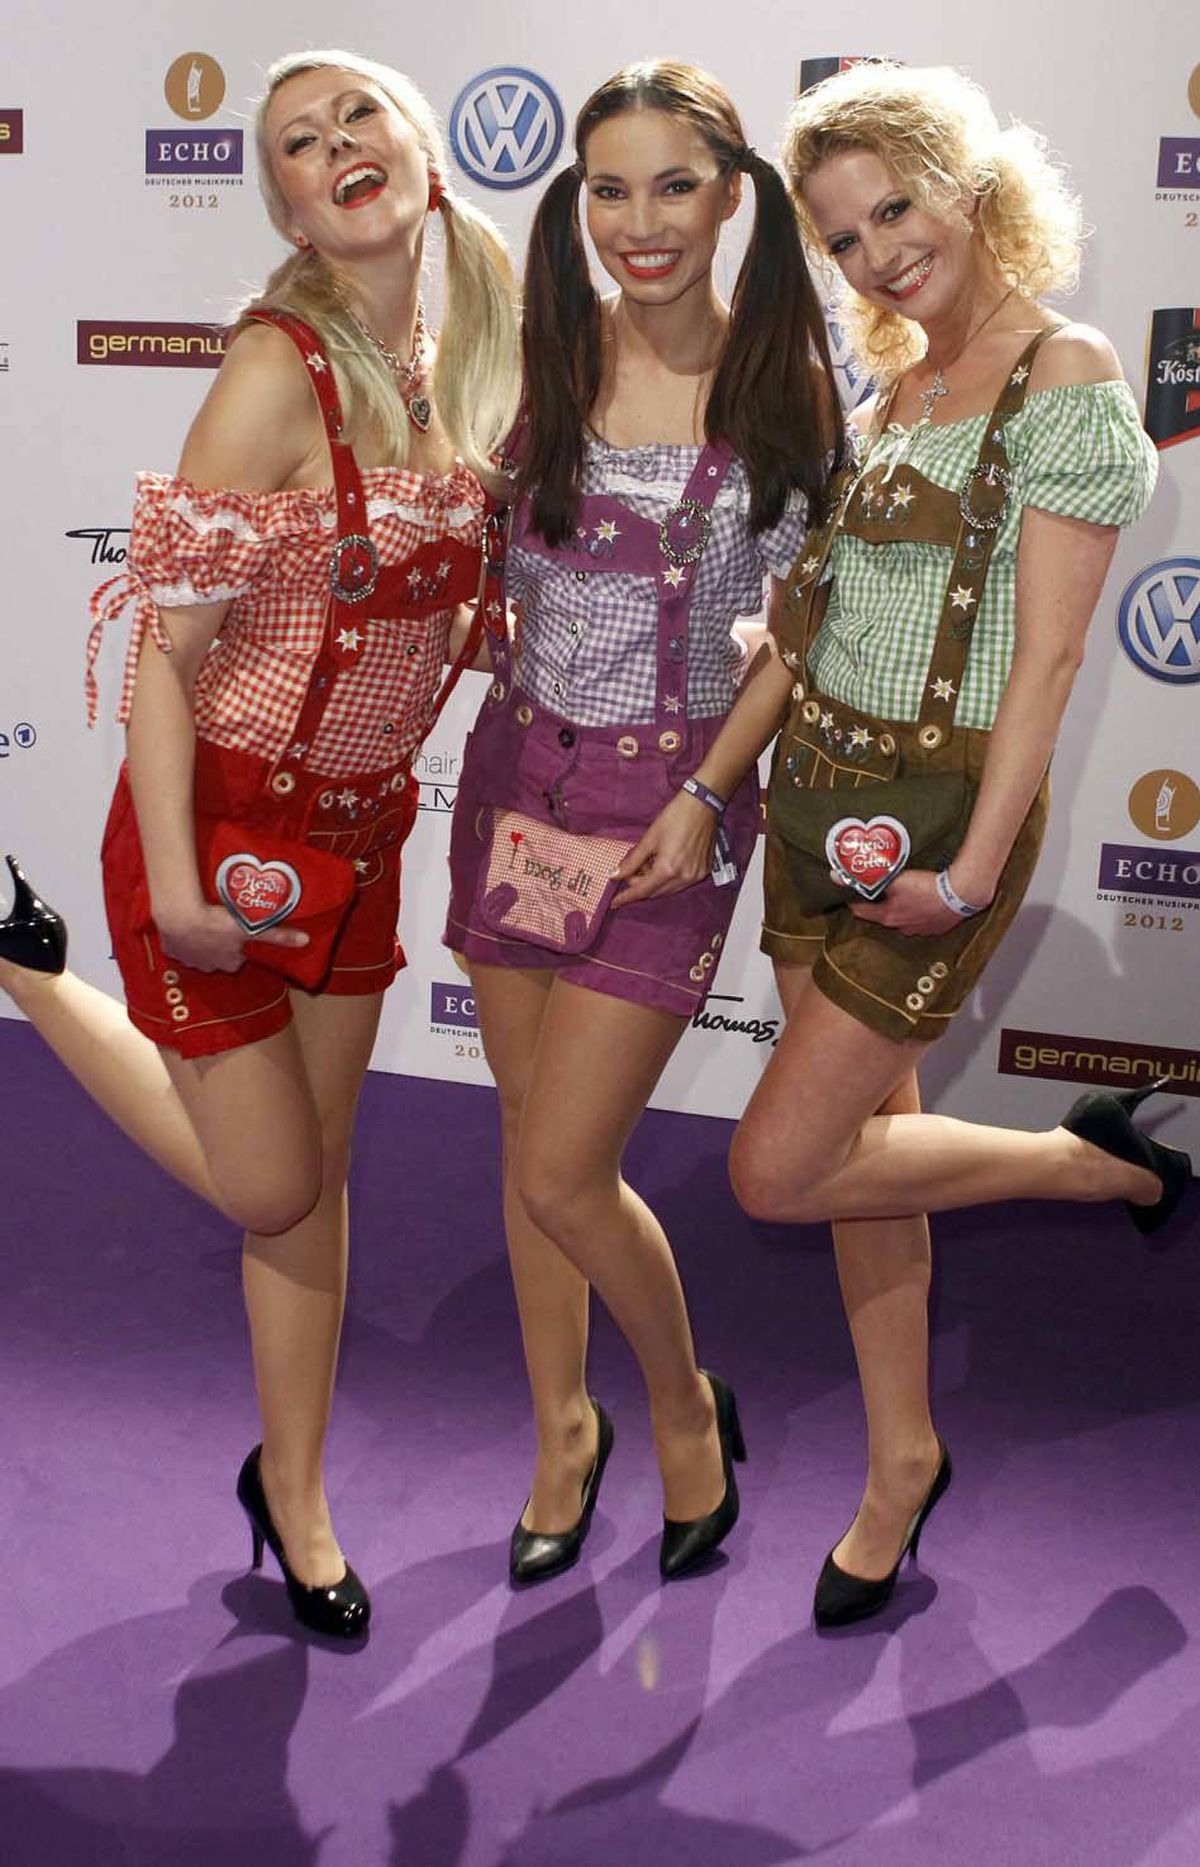 And welcome to Germany's annual Echo Music Awards in Berlin last week, folks. This is the German pop trio Heidi Erbens. You can tell they're German because two out three of them are blond.